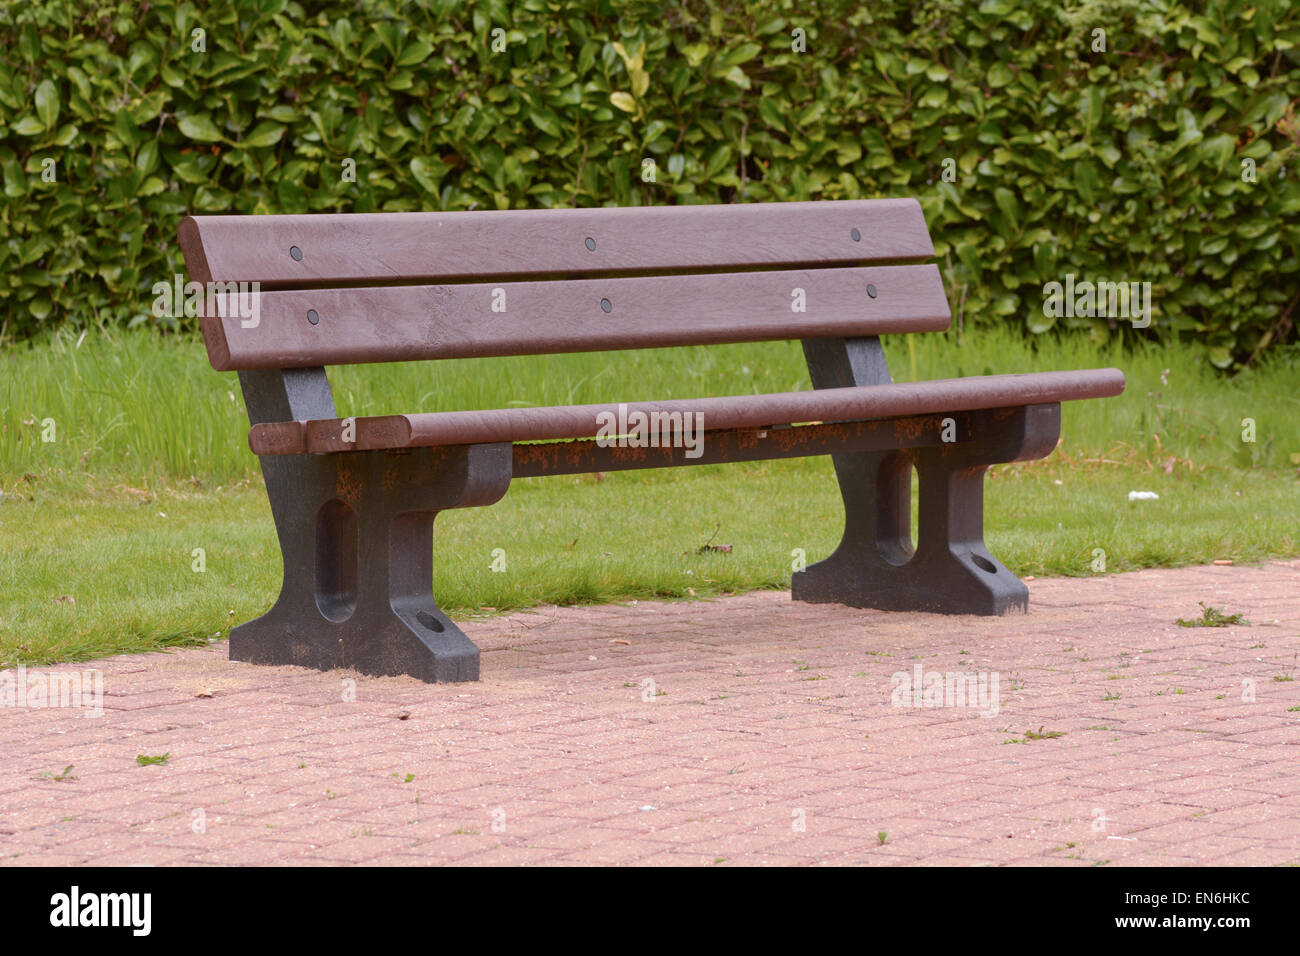 recycled plastic bench in public space stock photo, royalty free